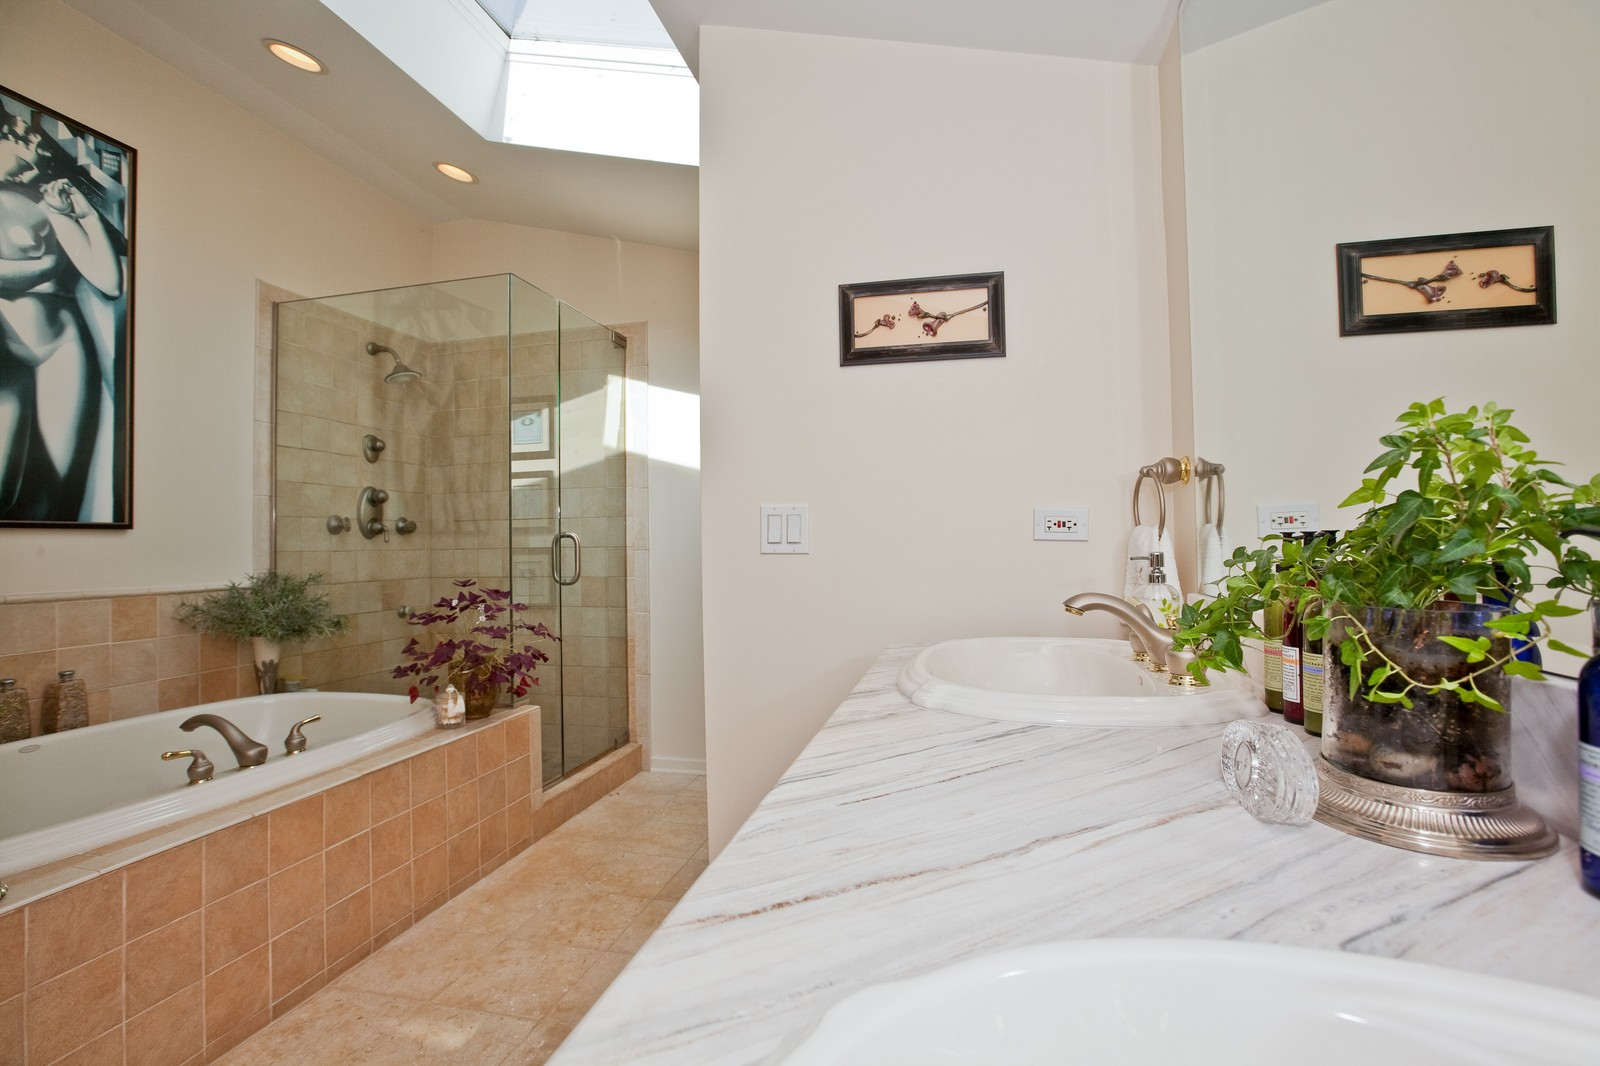 Real Estate Photography - 5743 Hillcrest Rd, Downers Grove, IL, 60516 - Master Bathroom